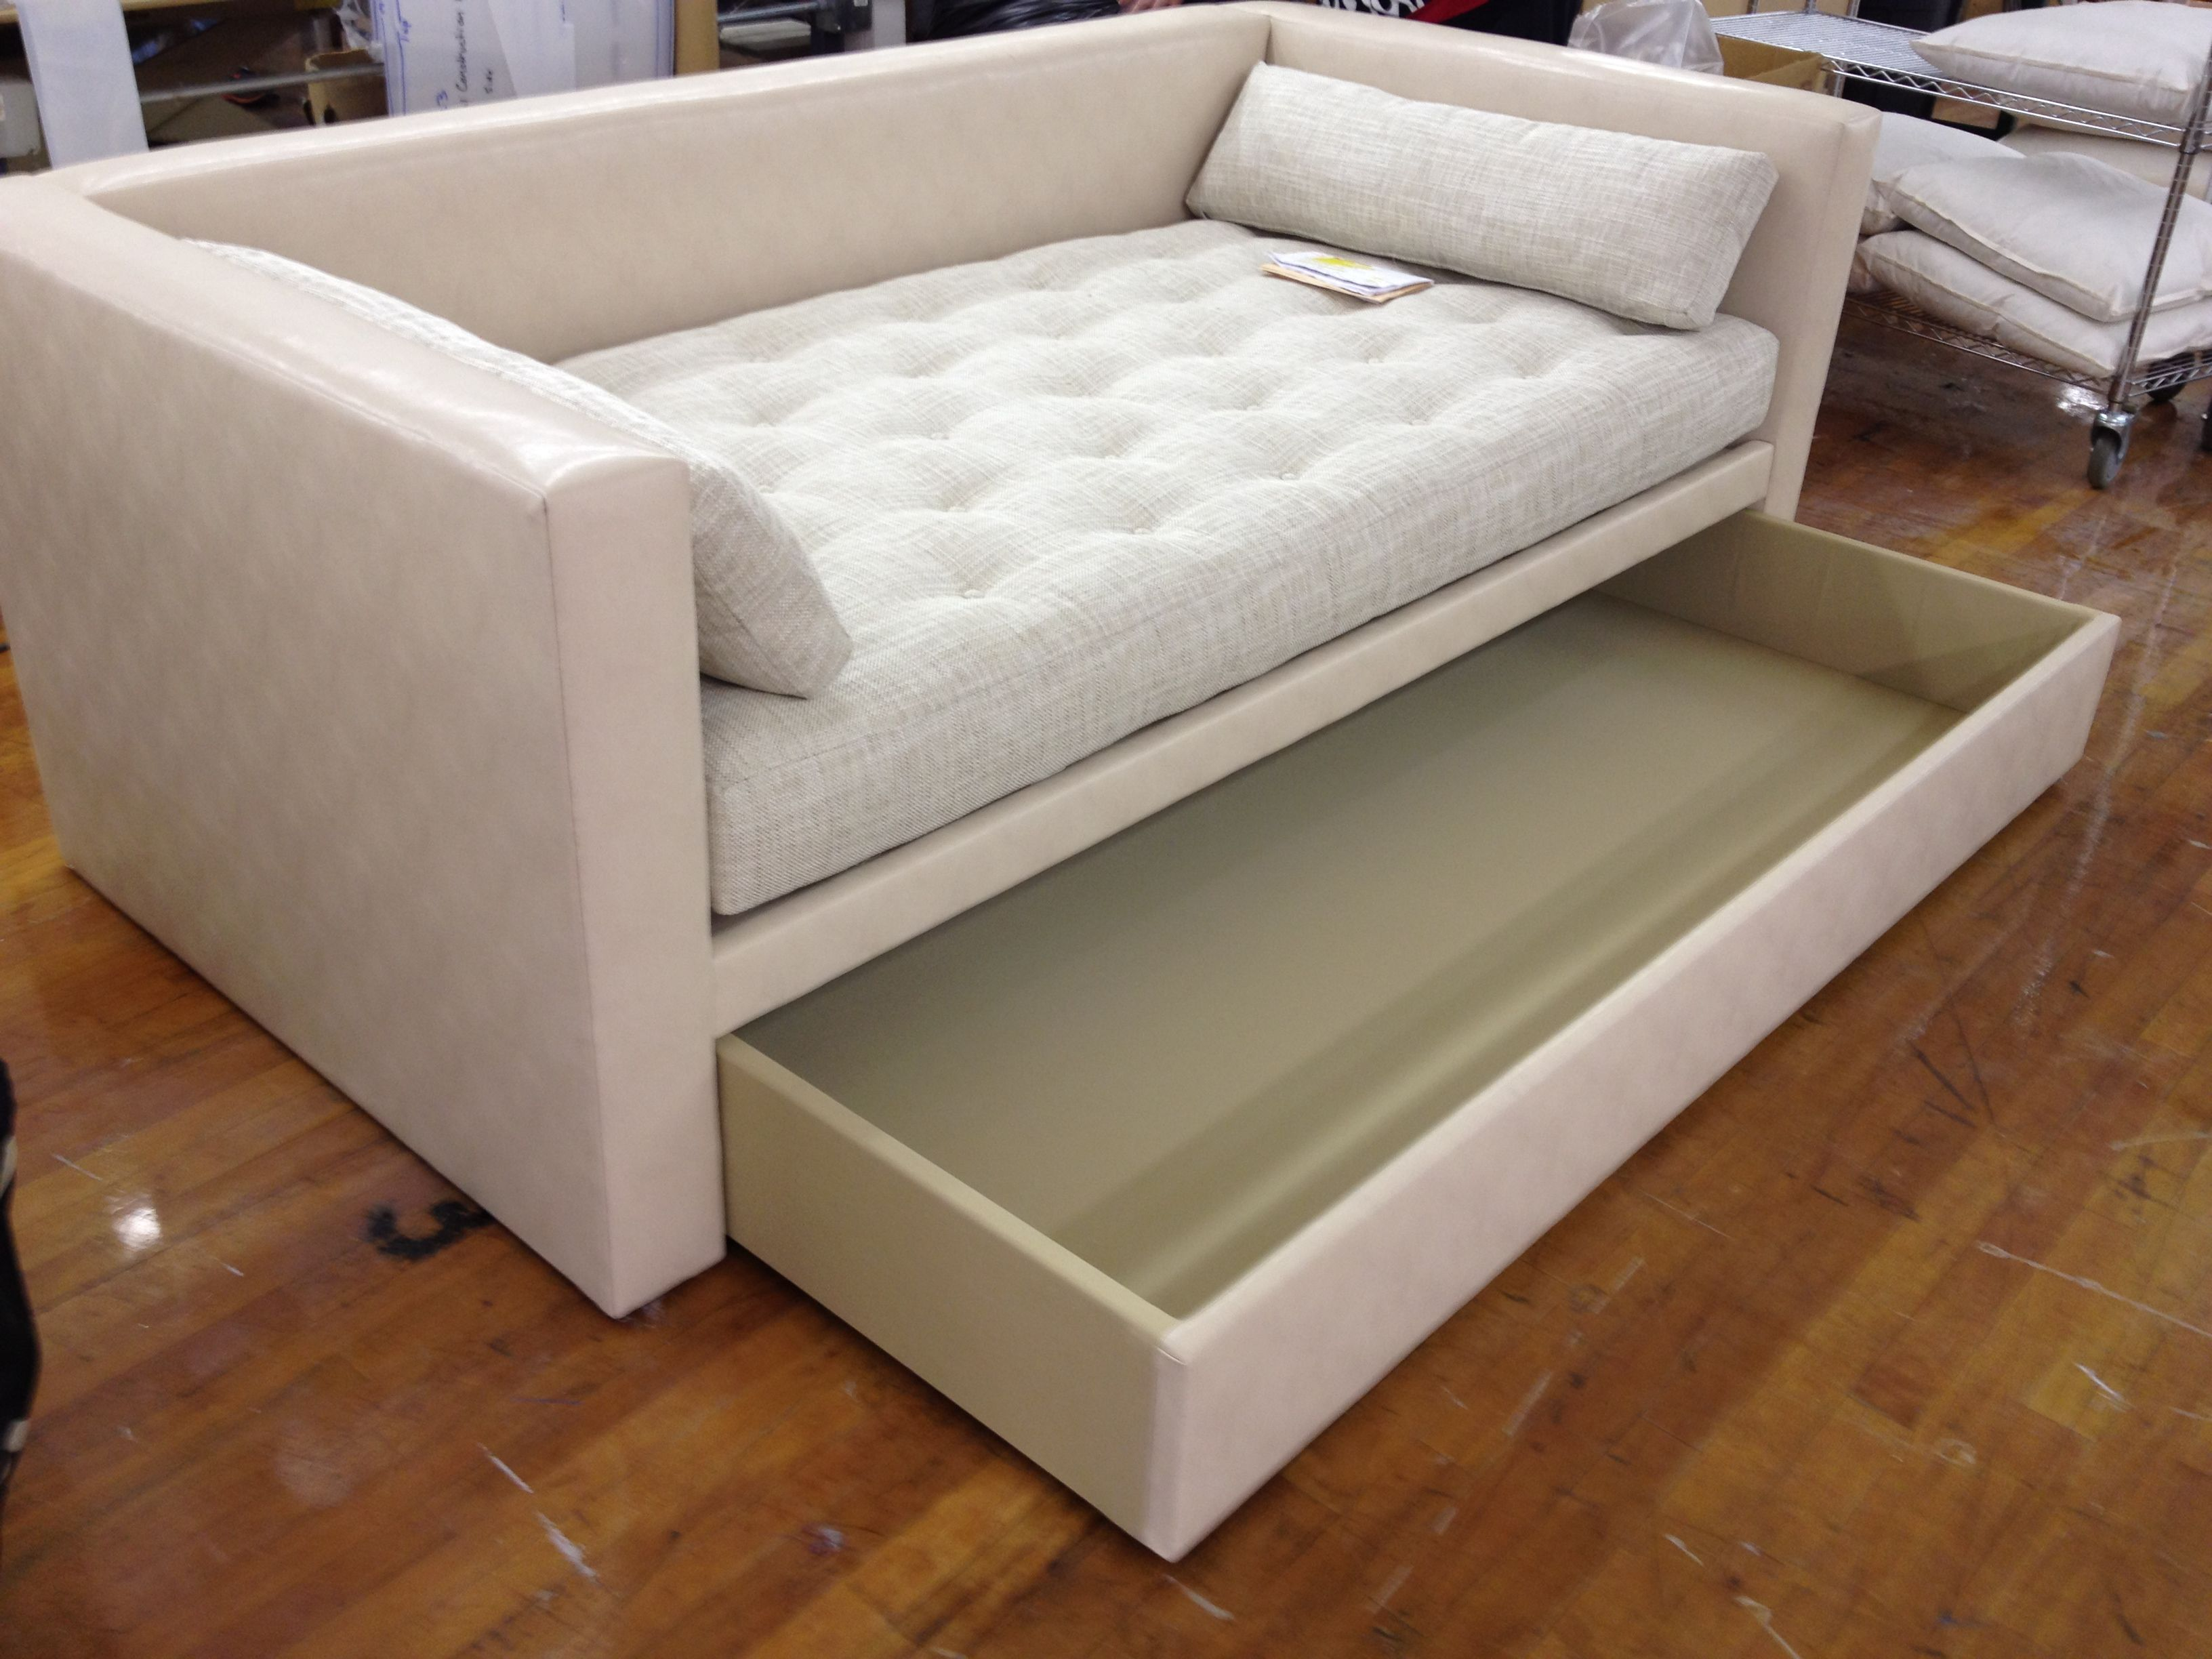 Trundle bed sofa porter m2m divan into a custom sized for Beds with trundle